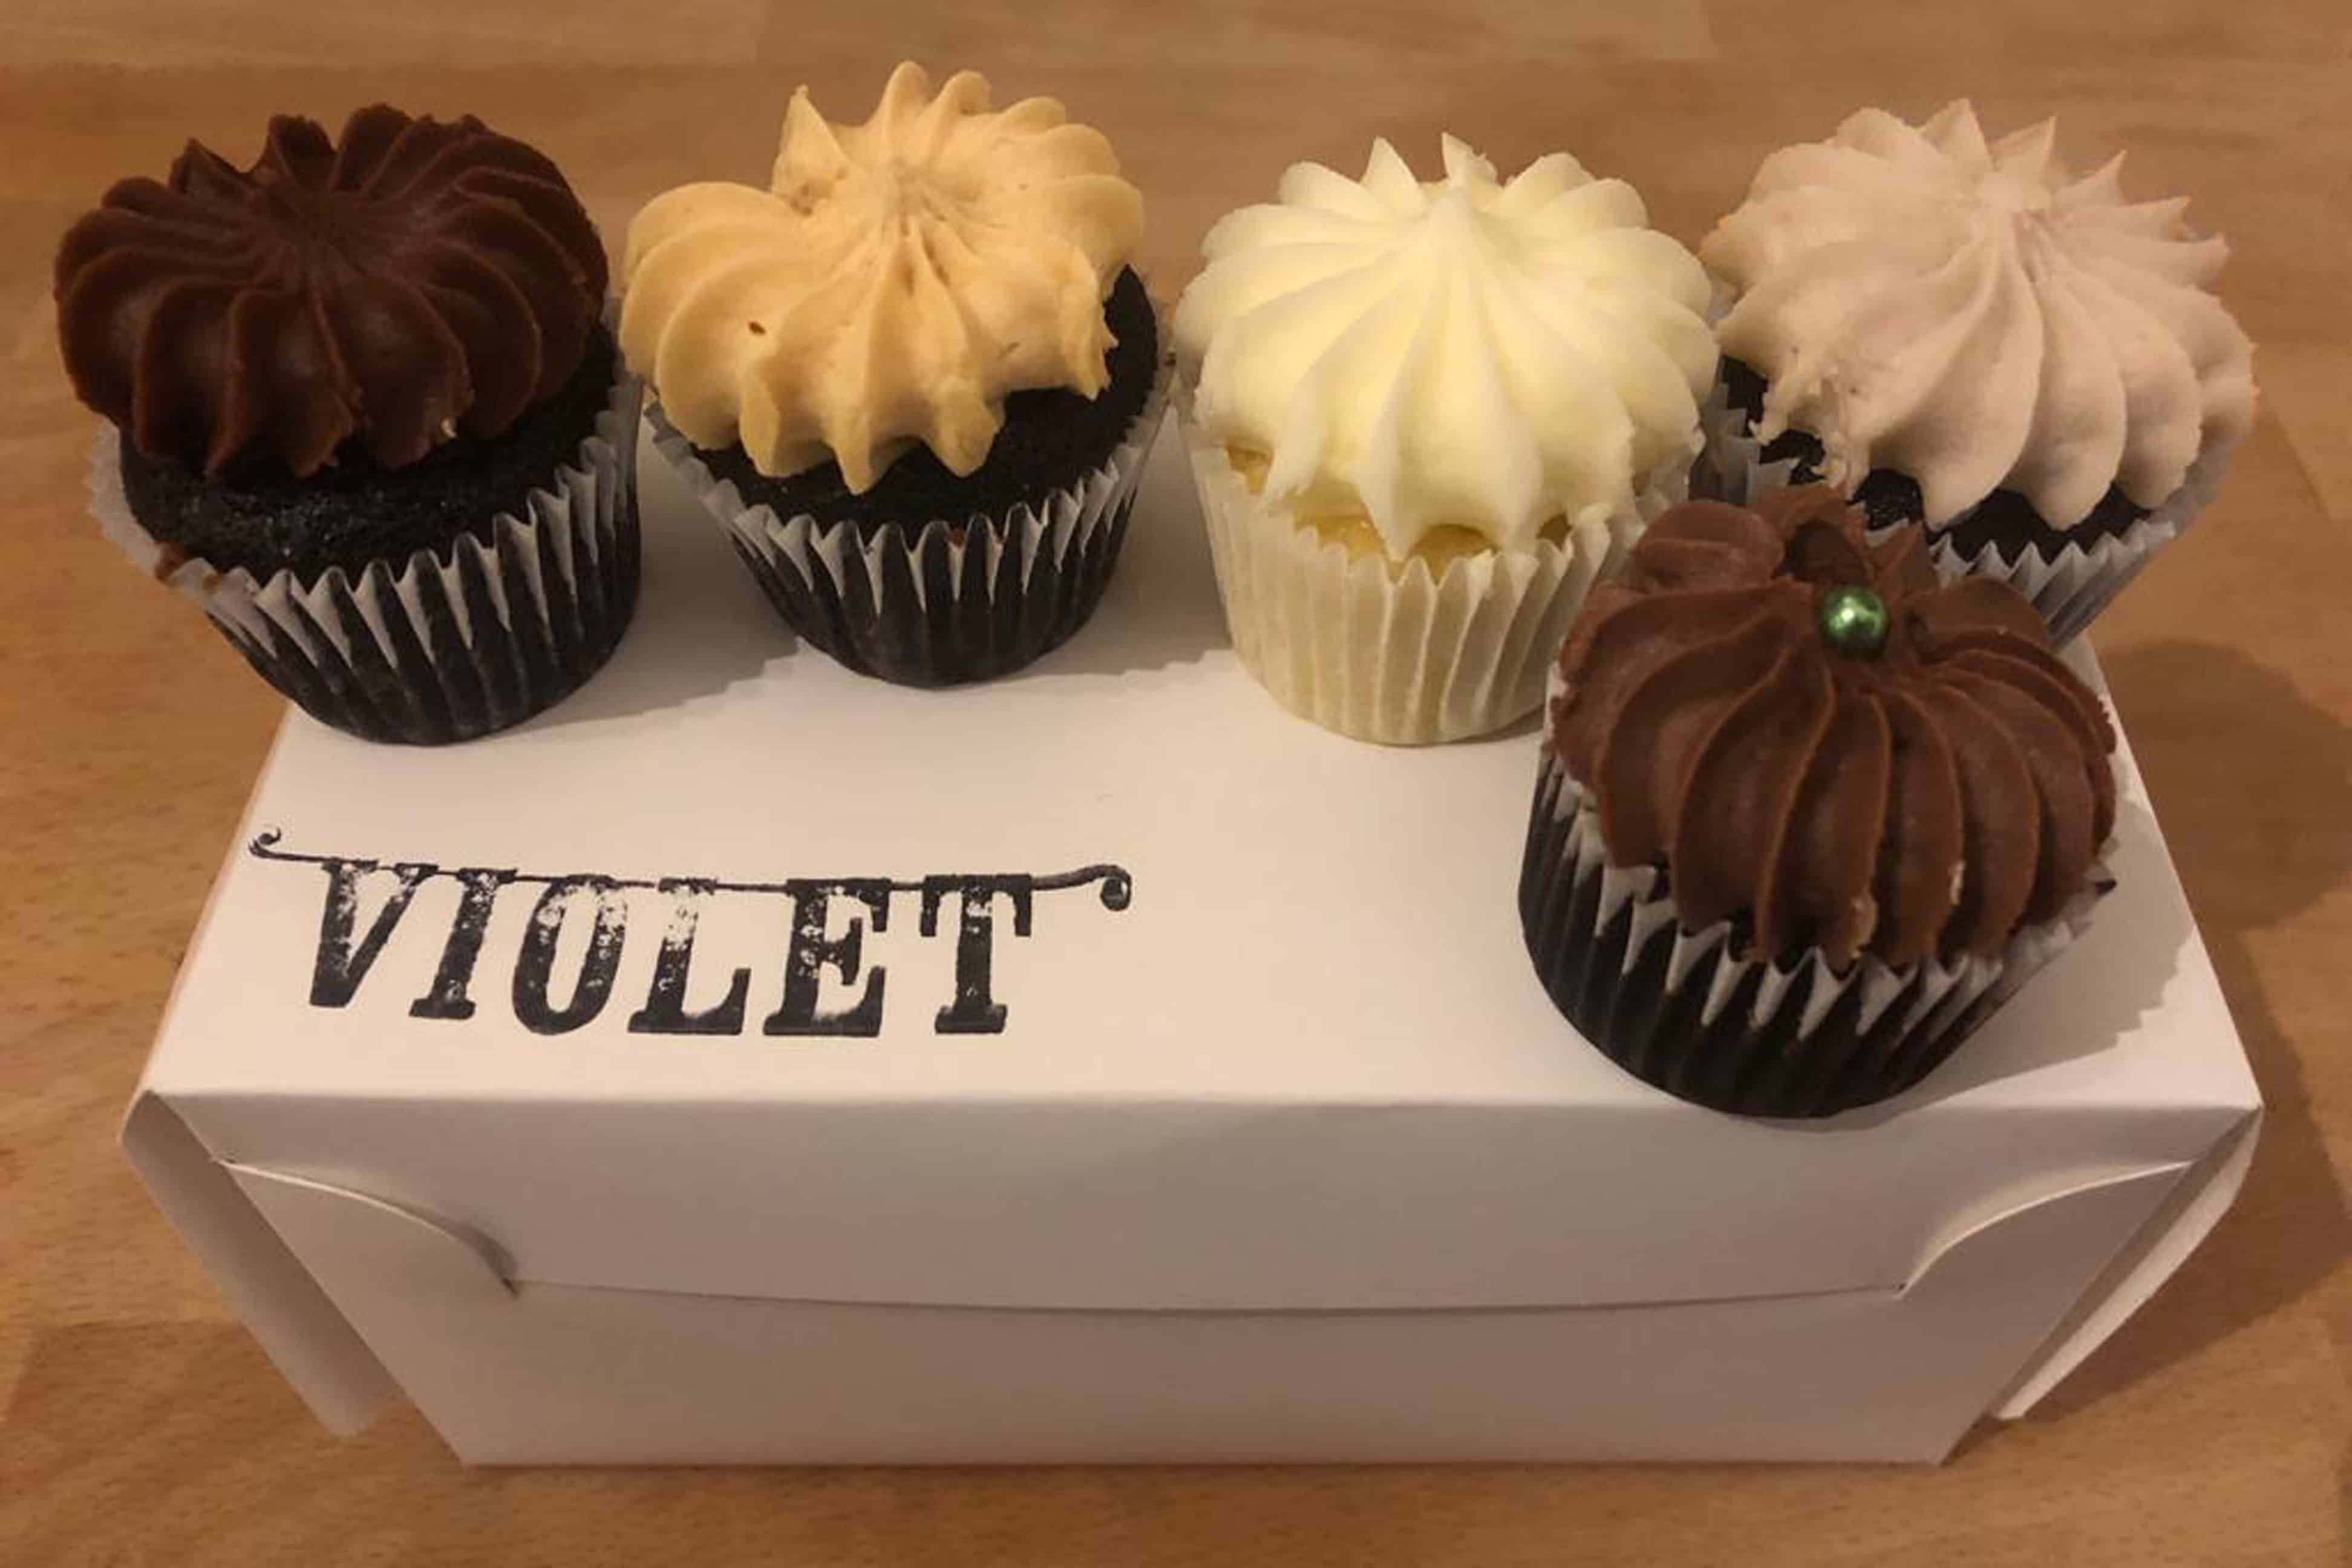 Cupcakes from Violet Bakery, Hackney